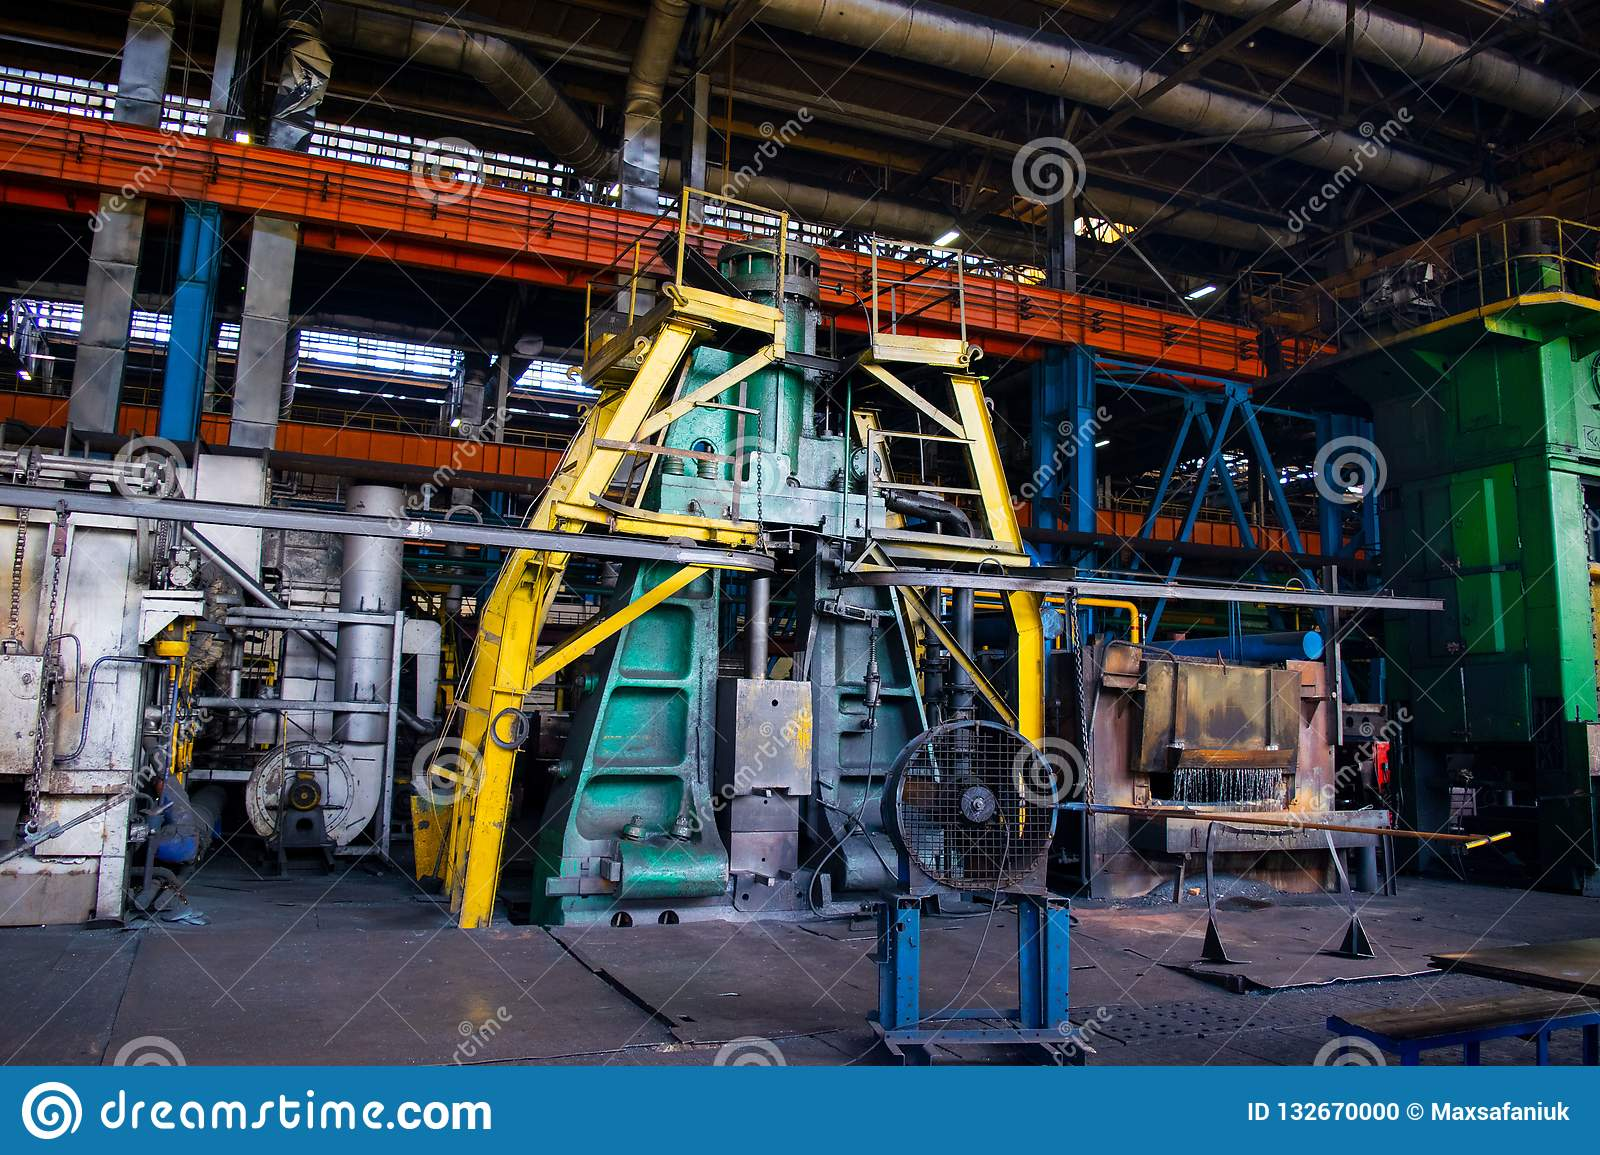 Industrial Forging Large Pressing Machine In The Industrial Shop Forging Plant Stock